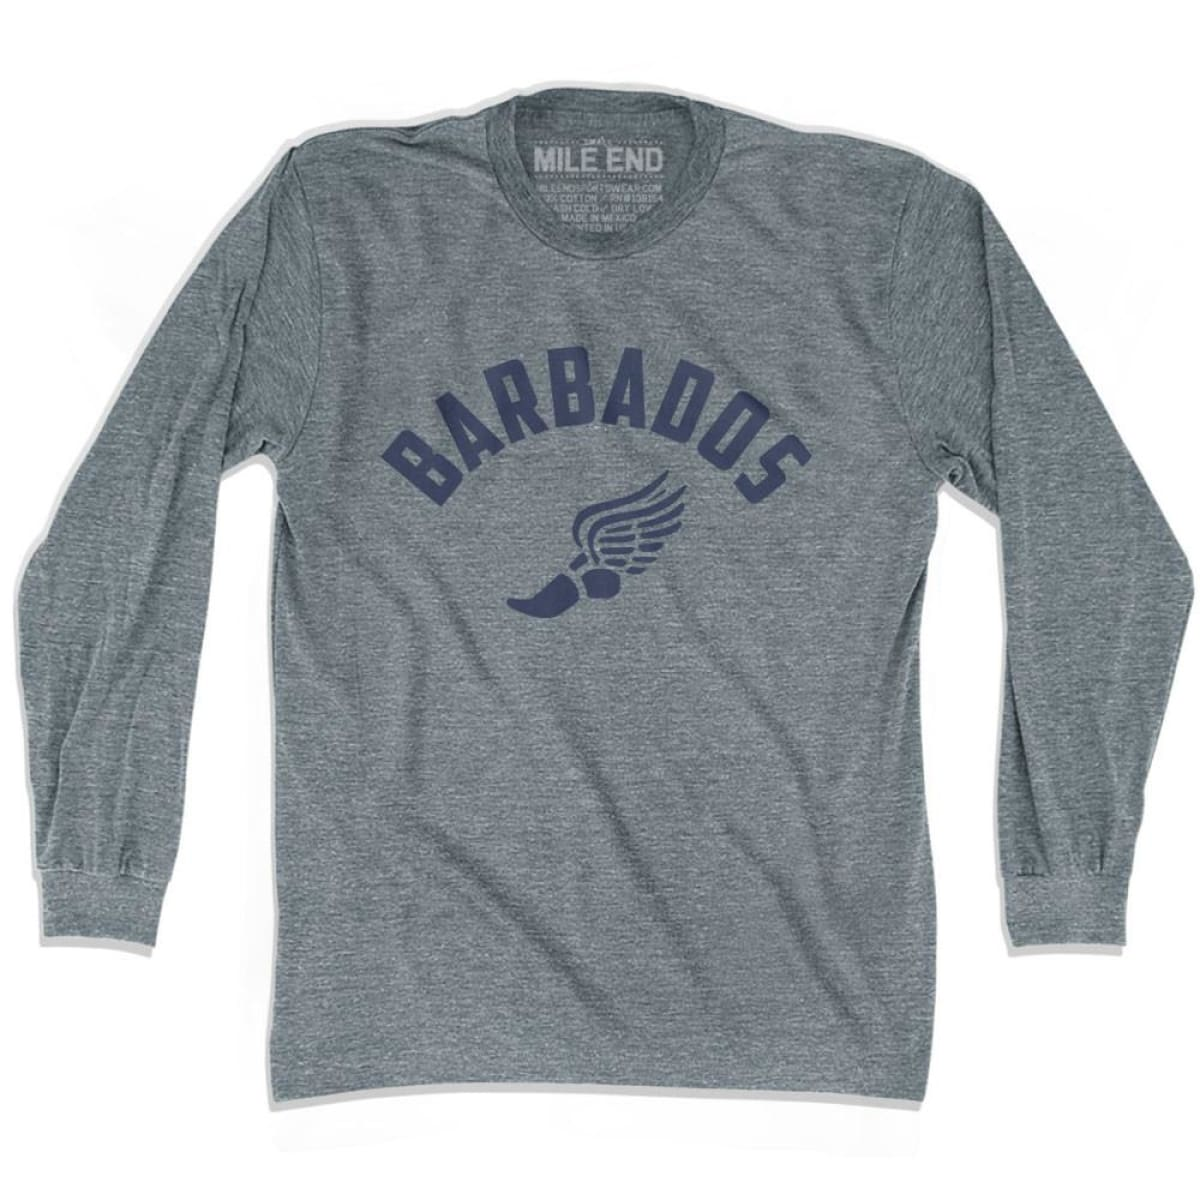 Barbados Track Long Sleeve T-shirt - Athletic Grey / Adult X-Small - Mile End Track